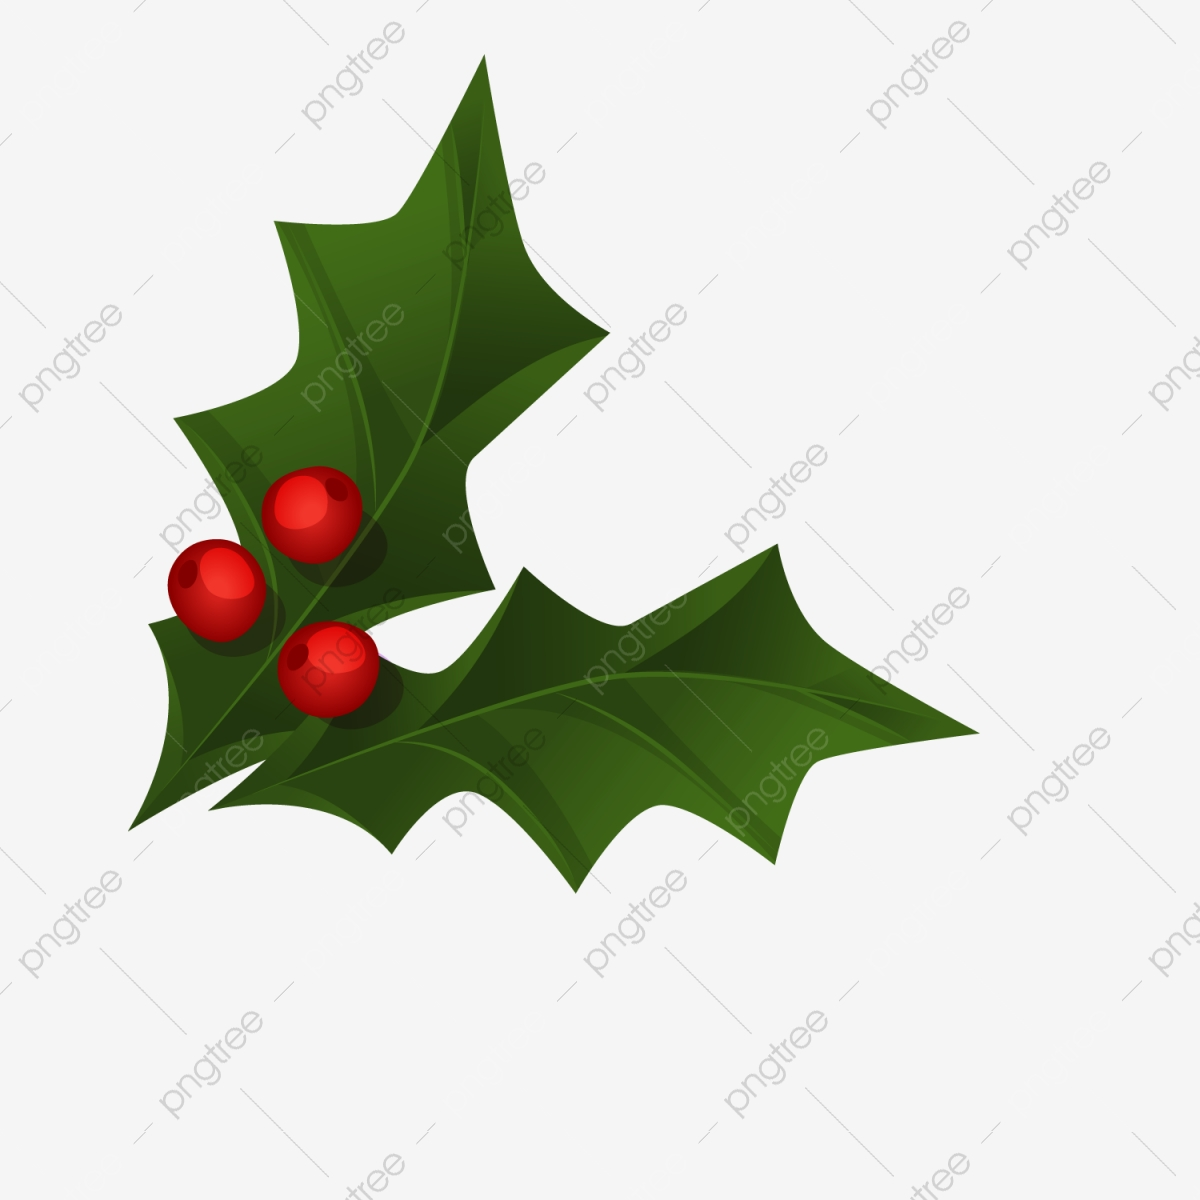 Christmas Leaves.Two Pieces Of Christmas Leaves Christmas Decoration Gift